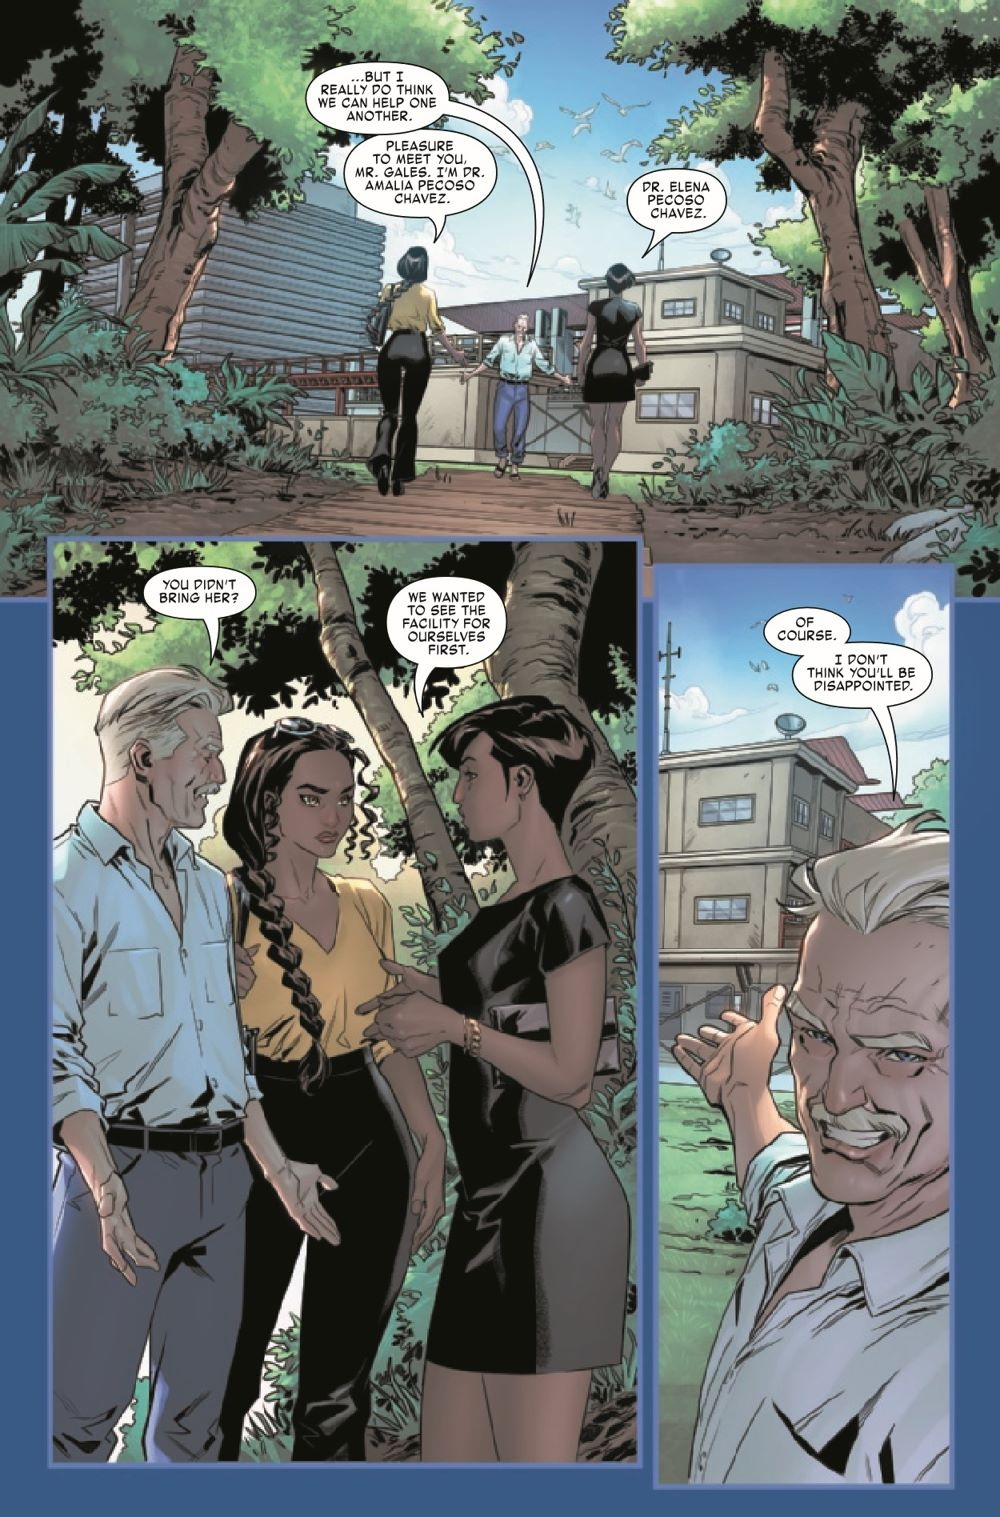 AMERCHAVEZUSA2021003_Preview-4 ComicList Previews: AMERICA CHAVEZ MADE IN THE U.S.A. #3 (OF 5)